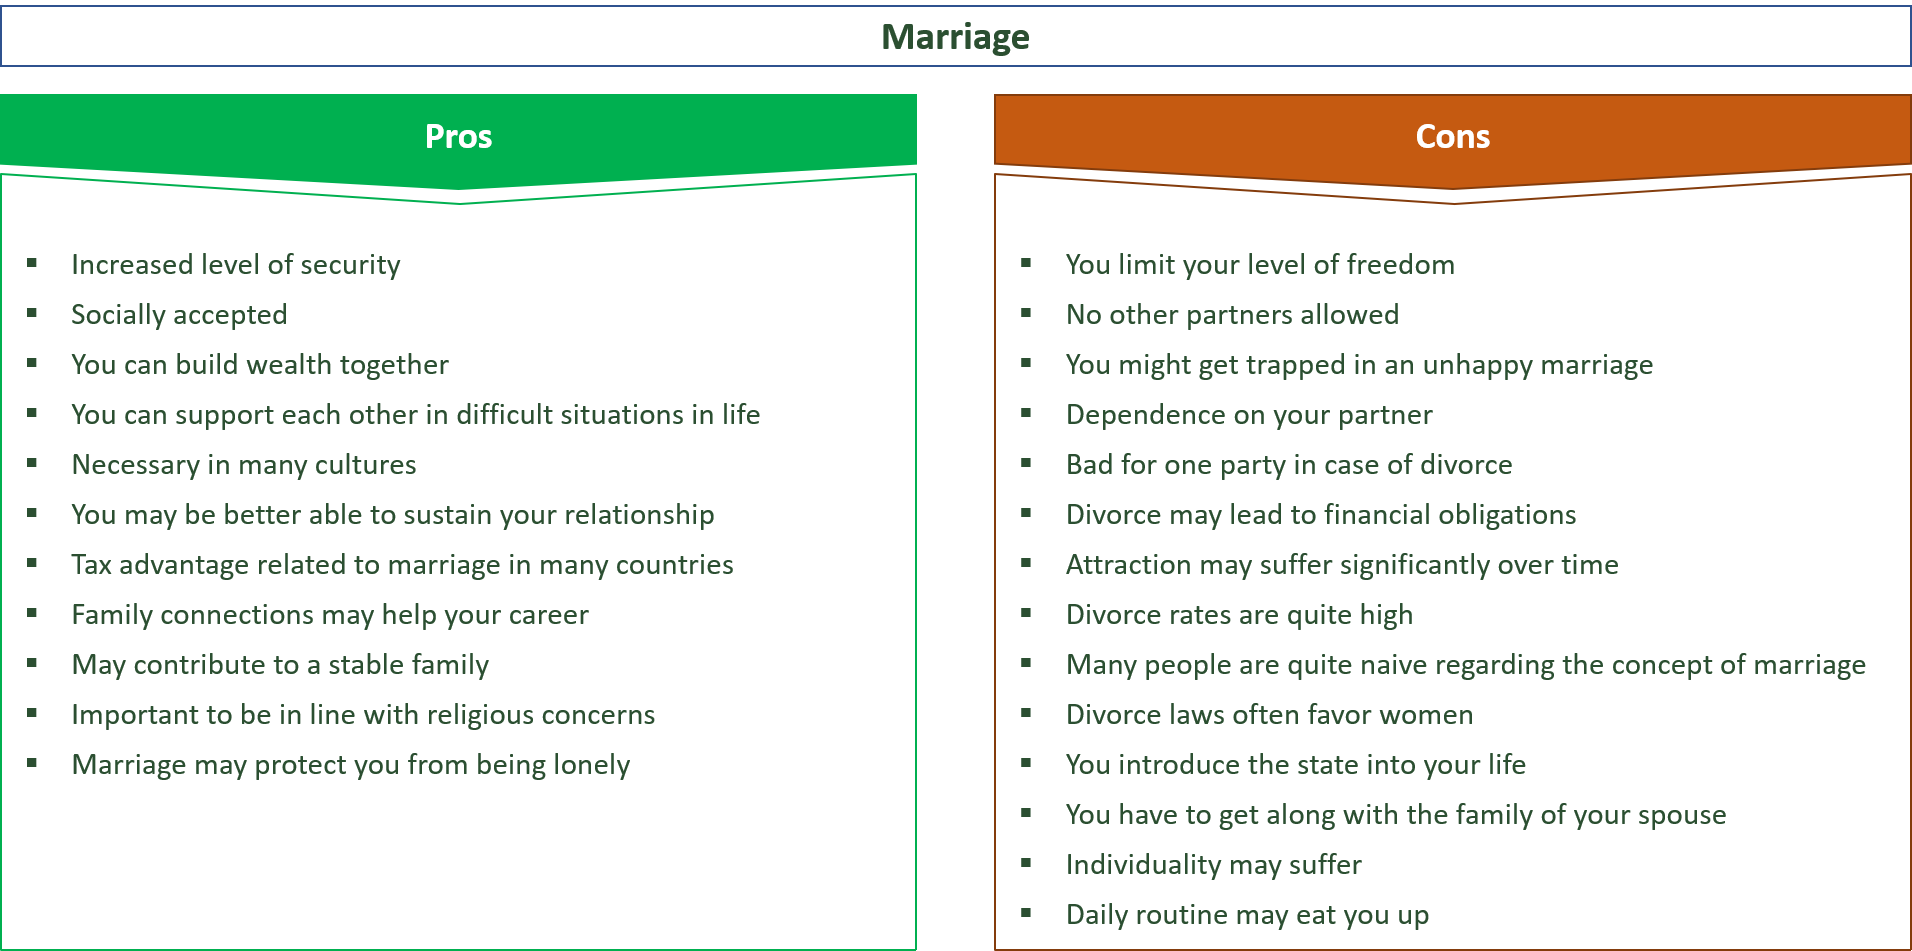 advantages and disadvantages of getting married